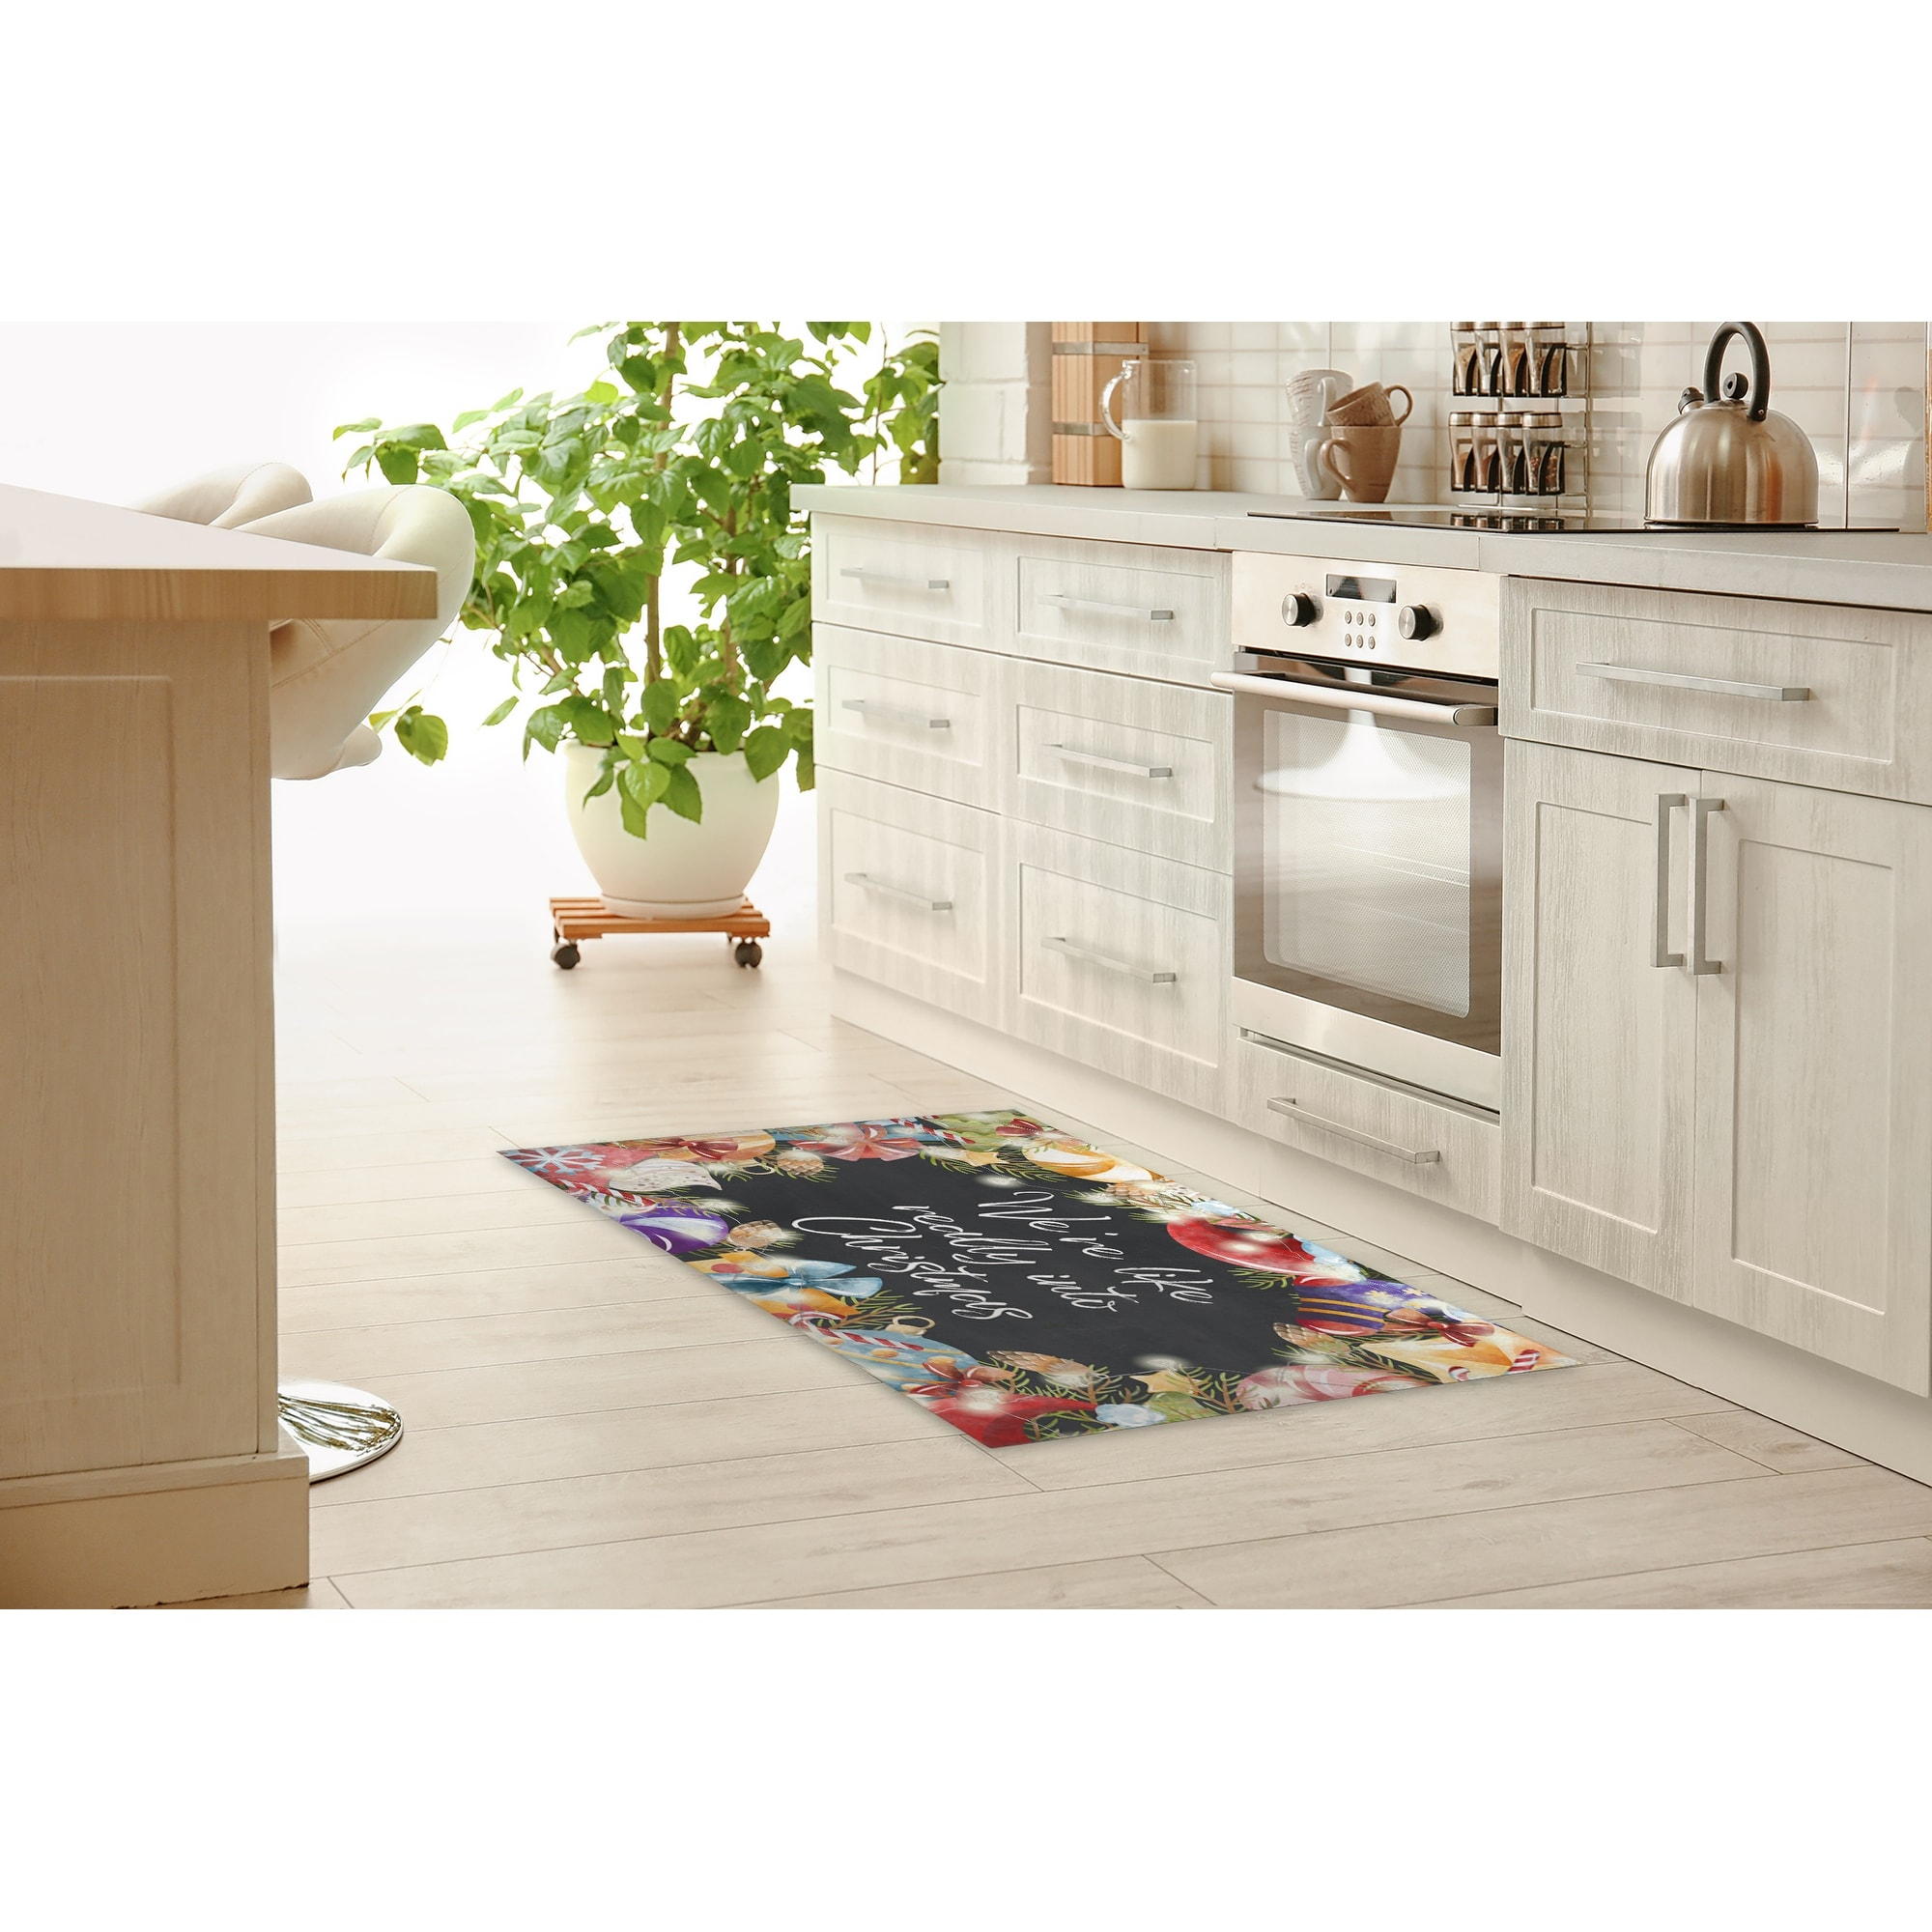 Picture of: We Re Like Really Into Christmas Kitchen Mat By Kavka Designs Overstock 32224539